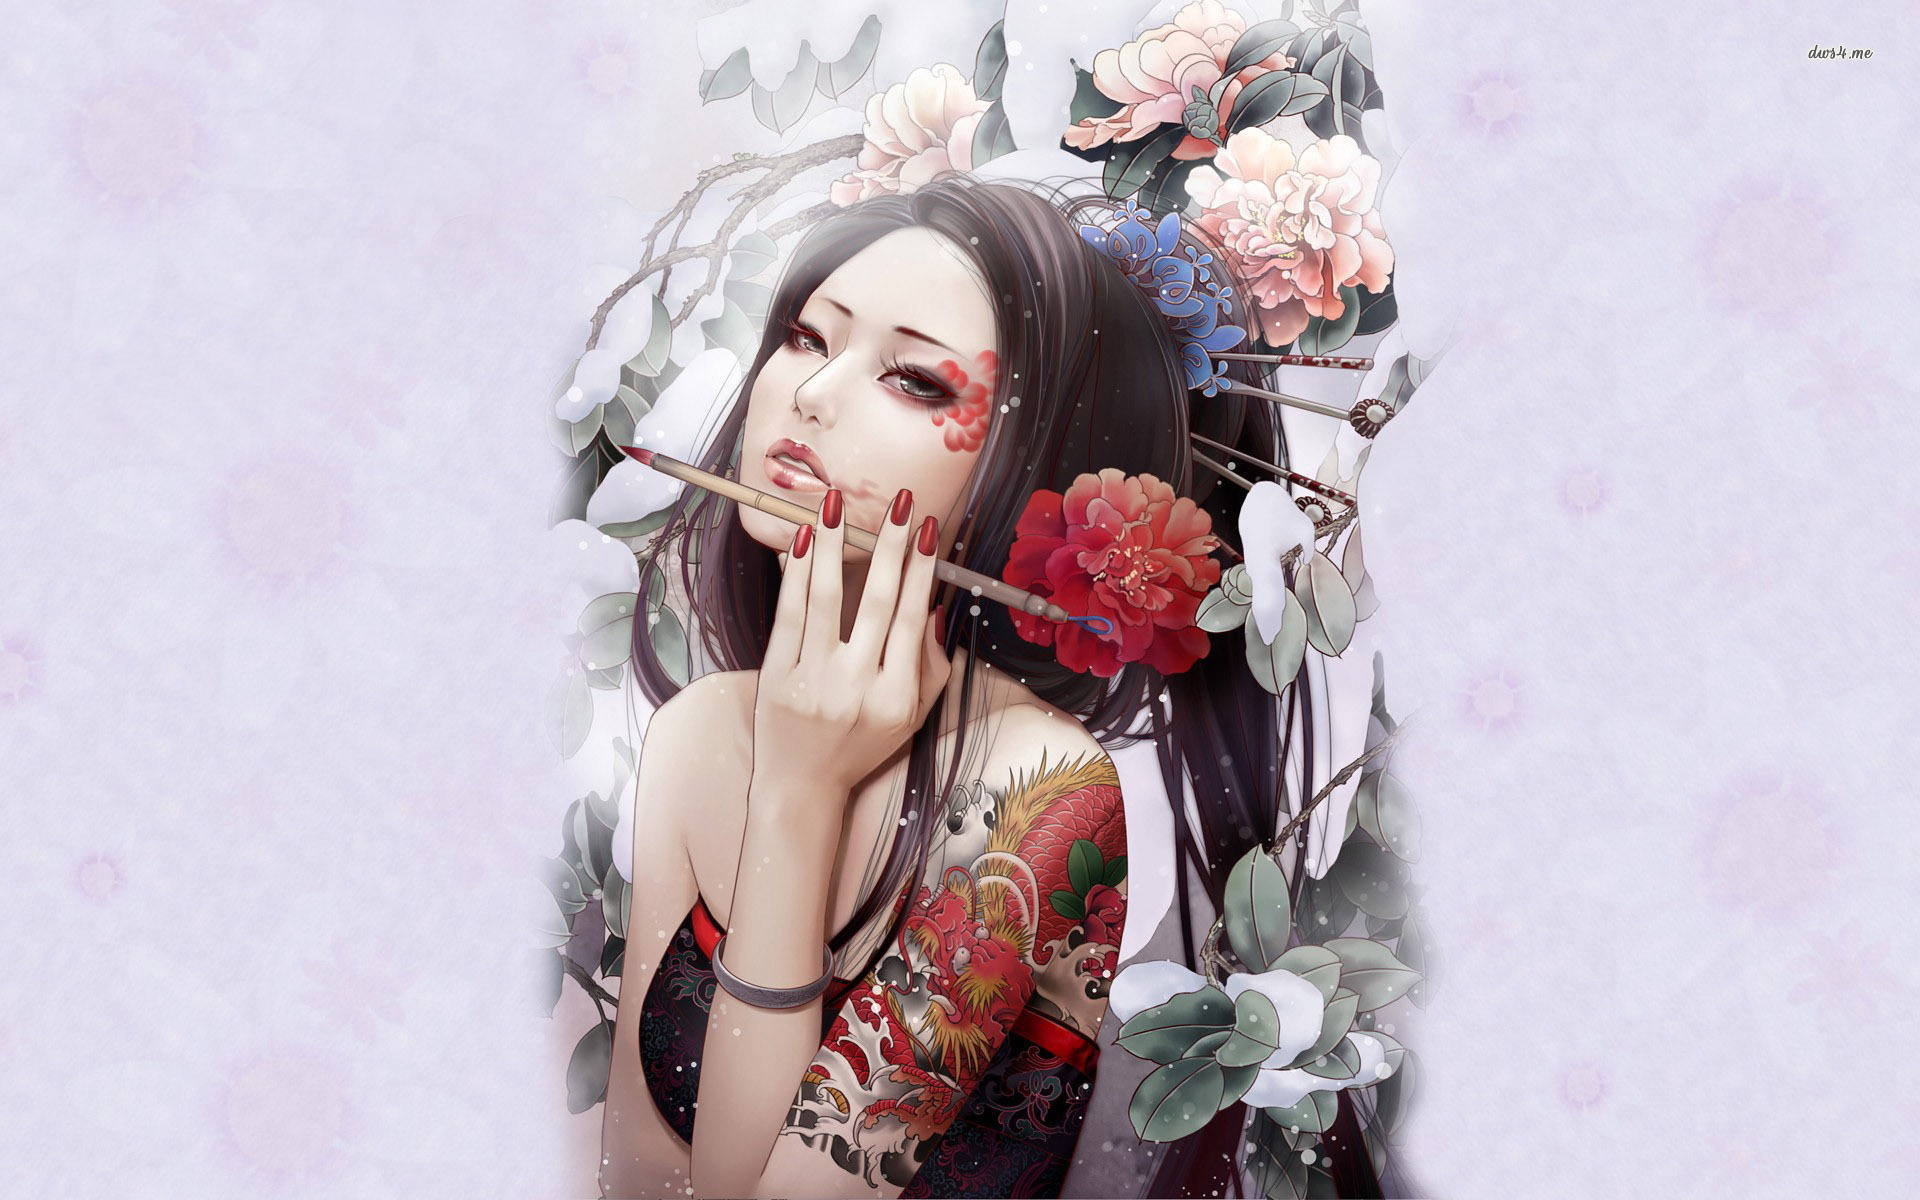 Artistic geisha wallpaper   974834 1920x1200